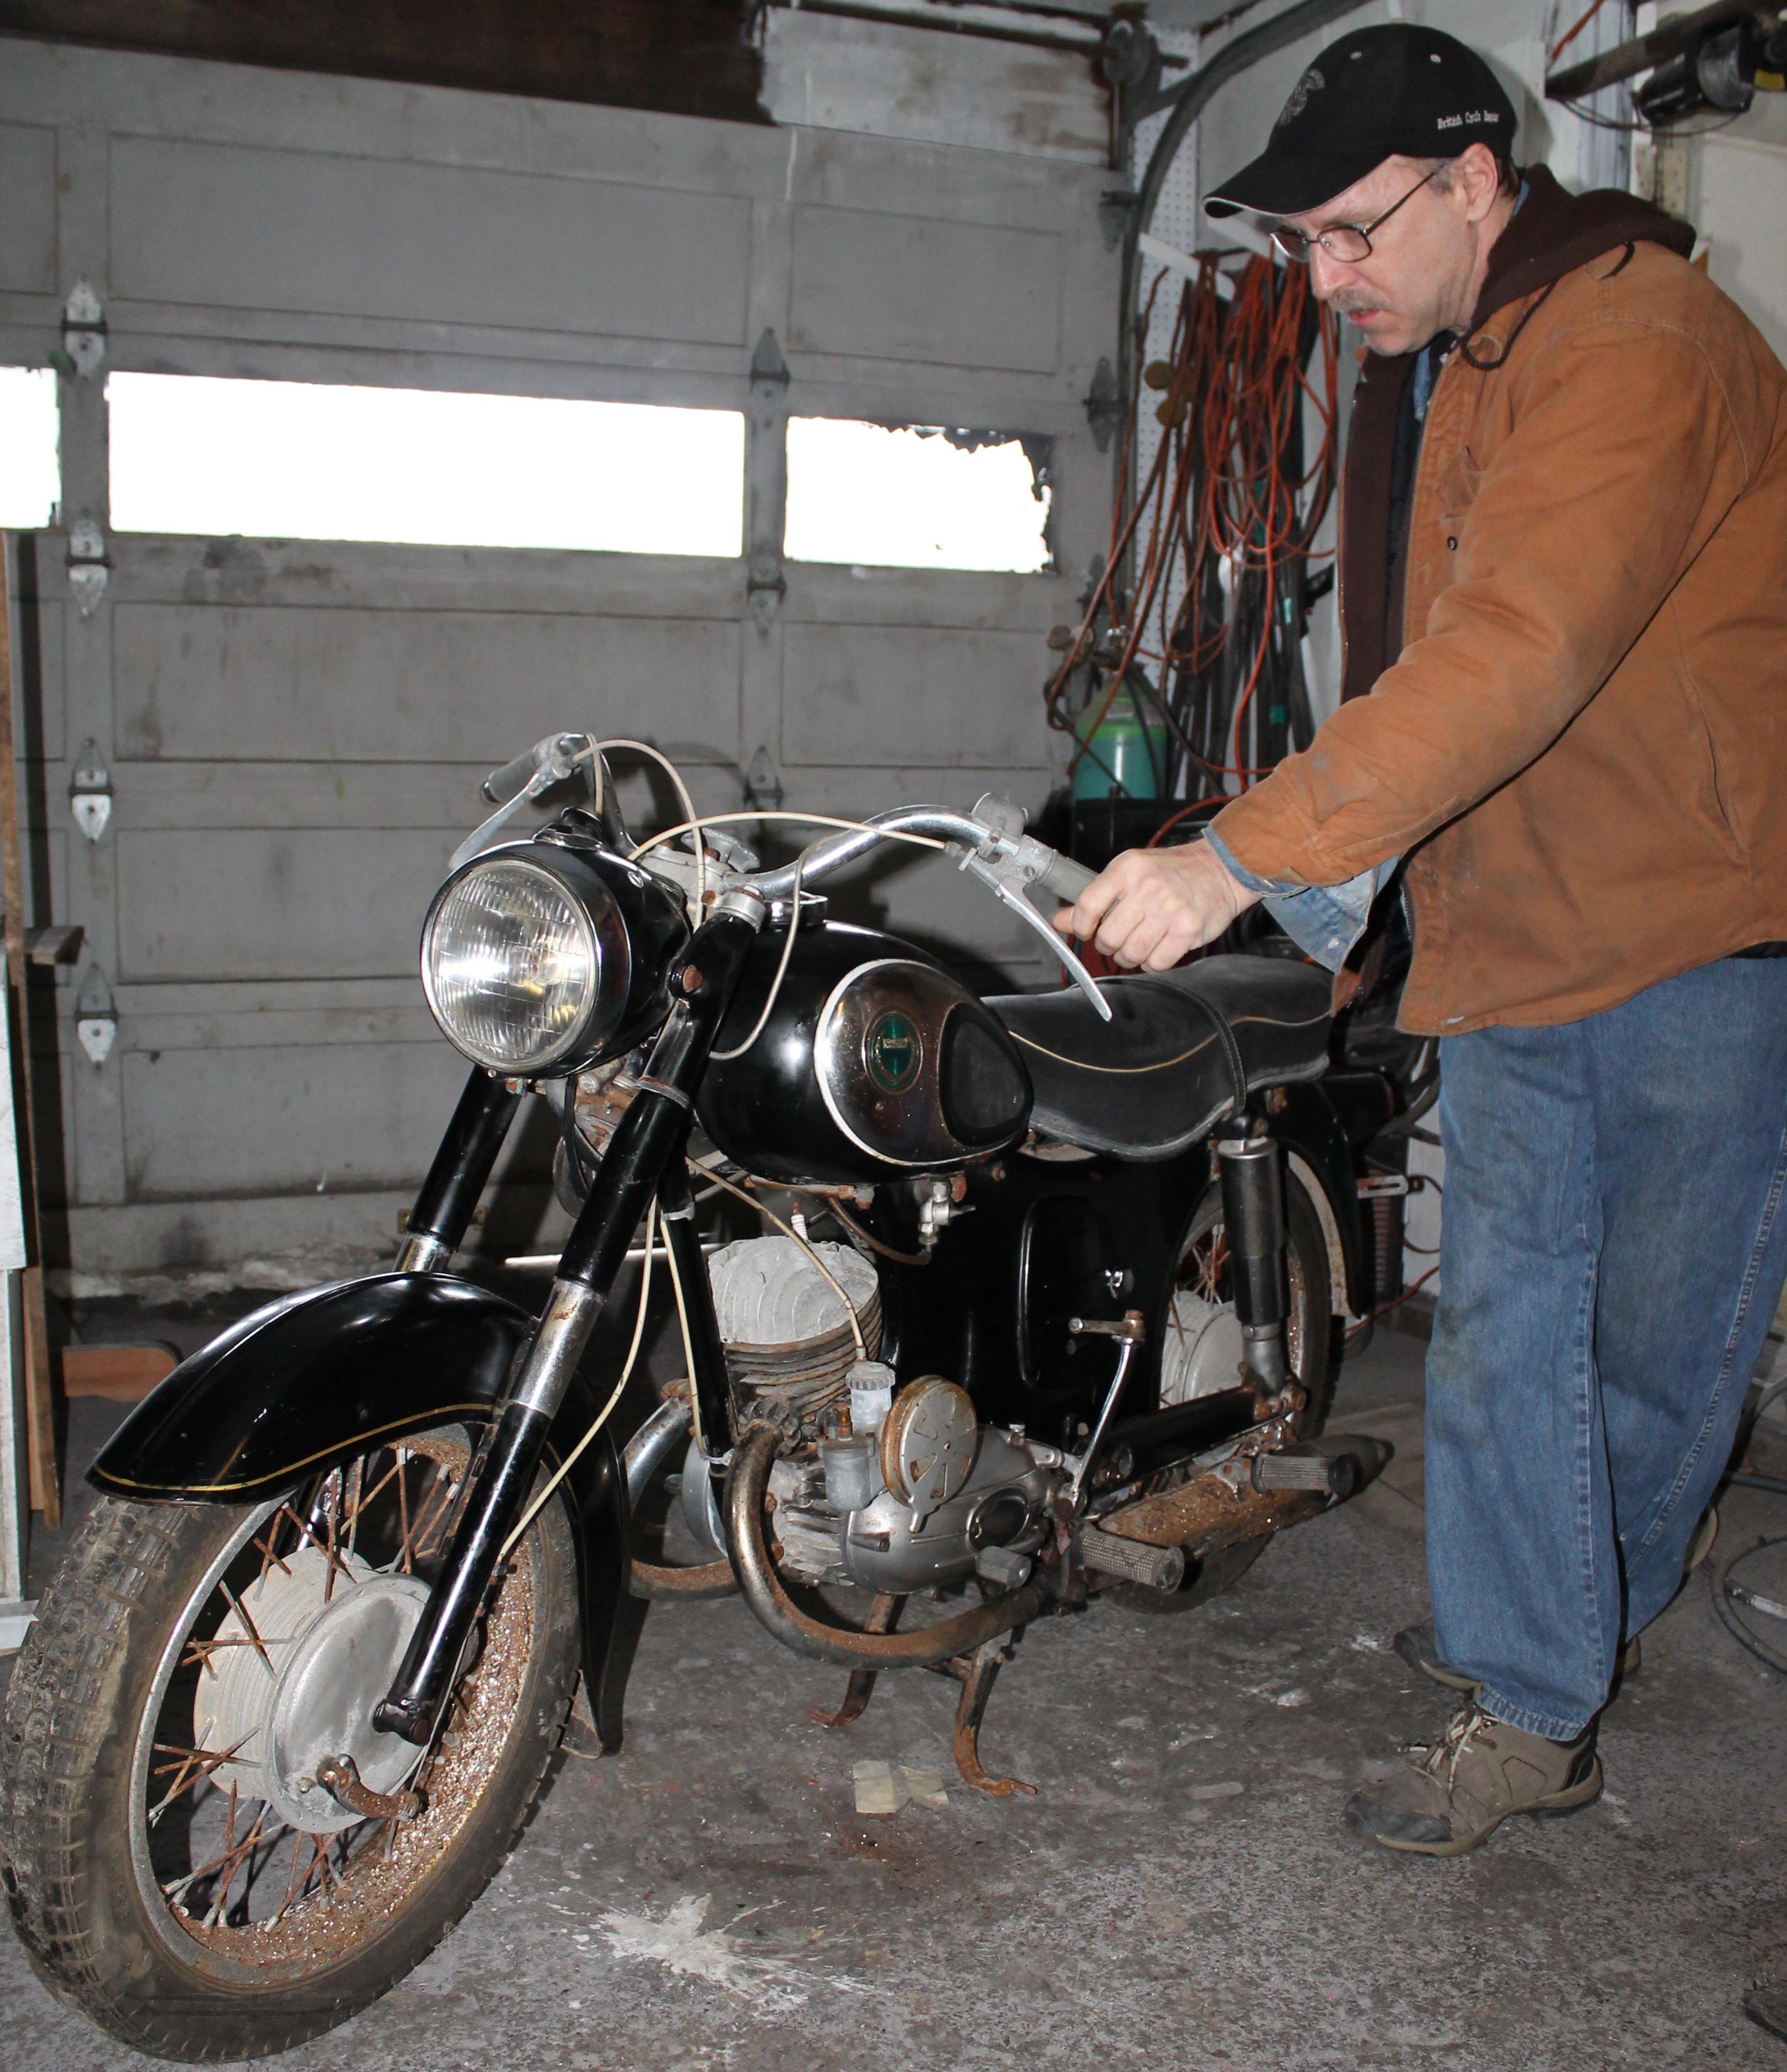 1966 Simpson Sears 175 Vtwin motorcycle